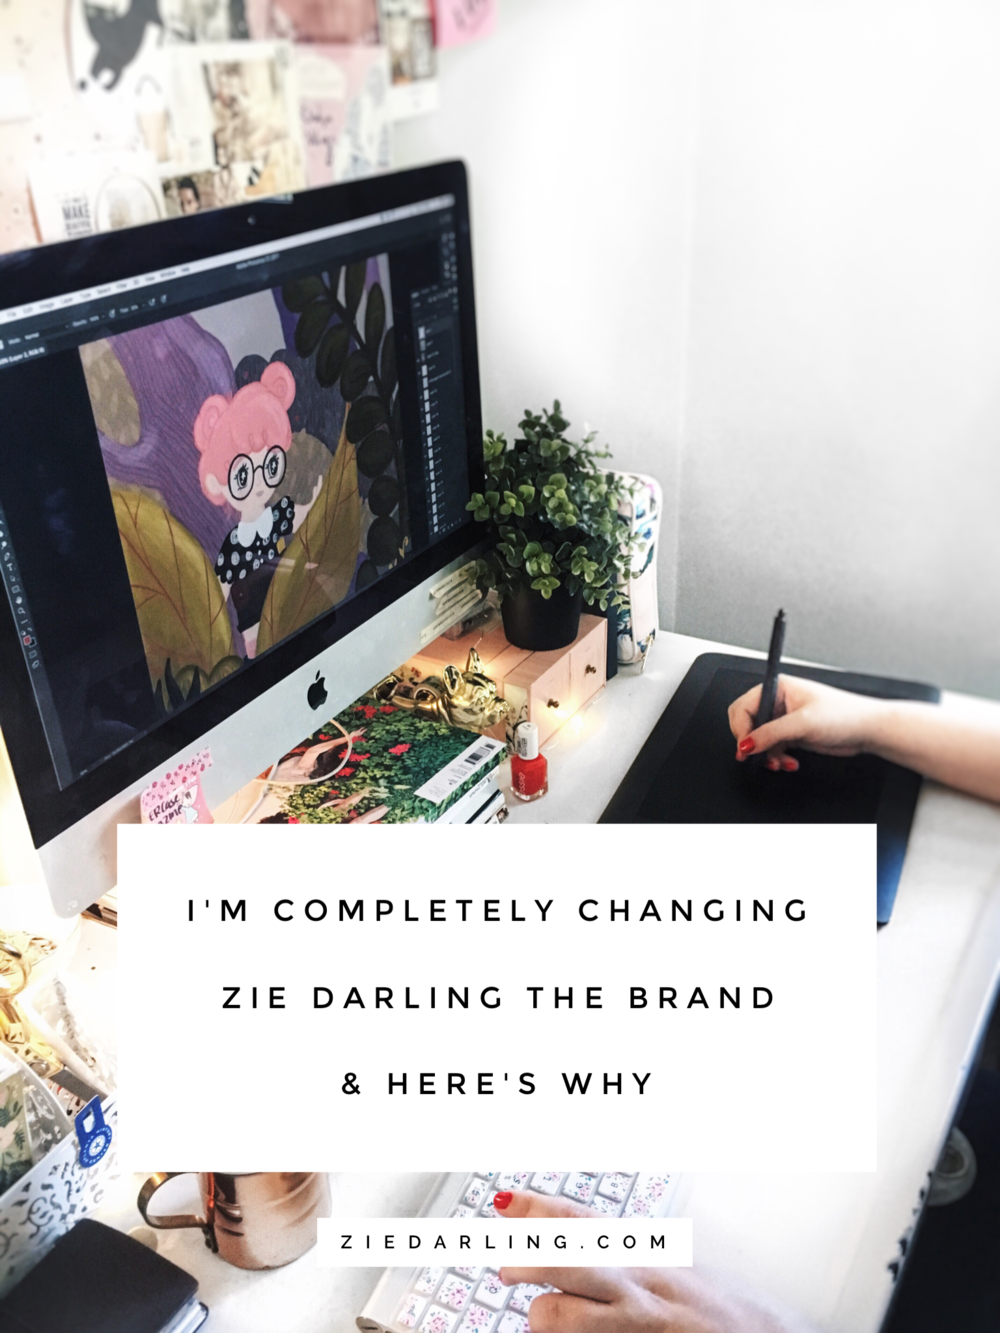 zie darling.com | I'm completely changing Zie Darling as a brand. Here's why